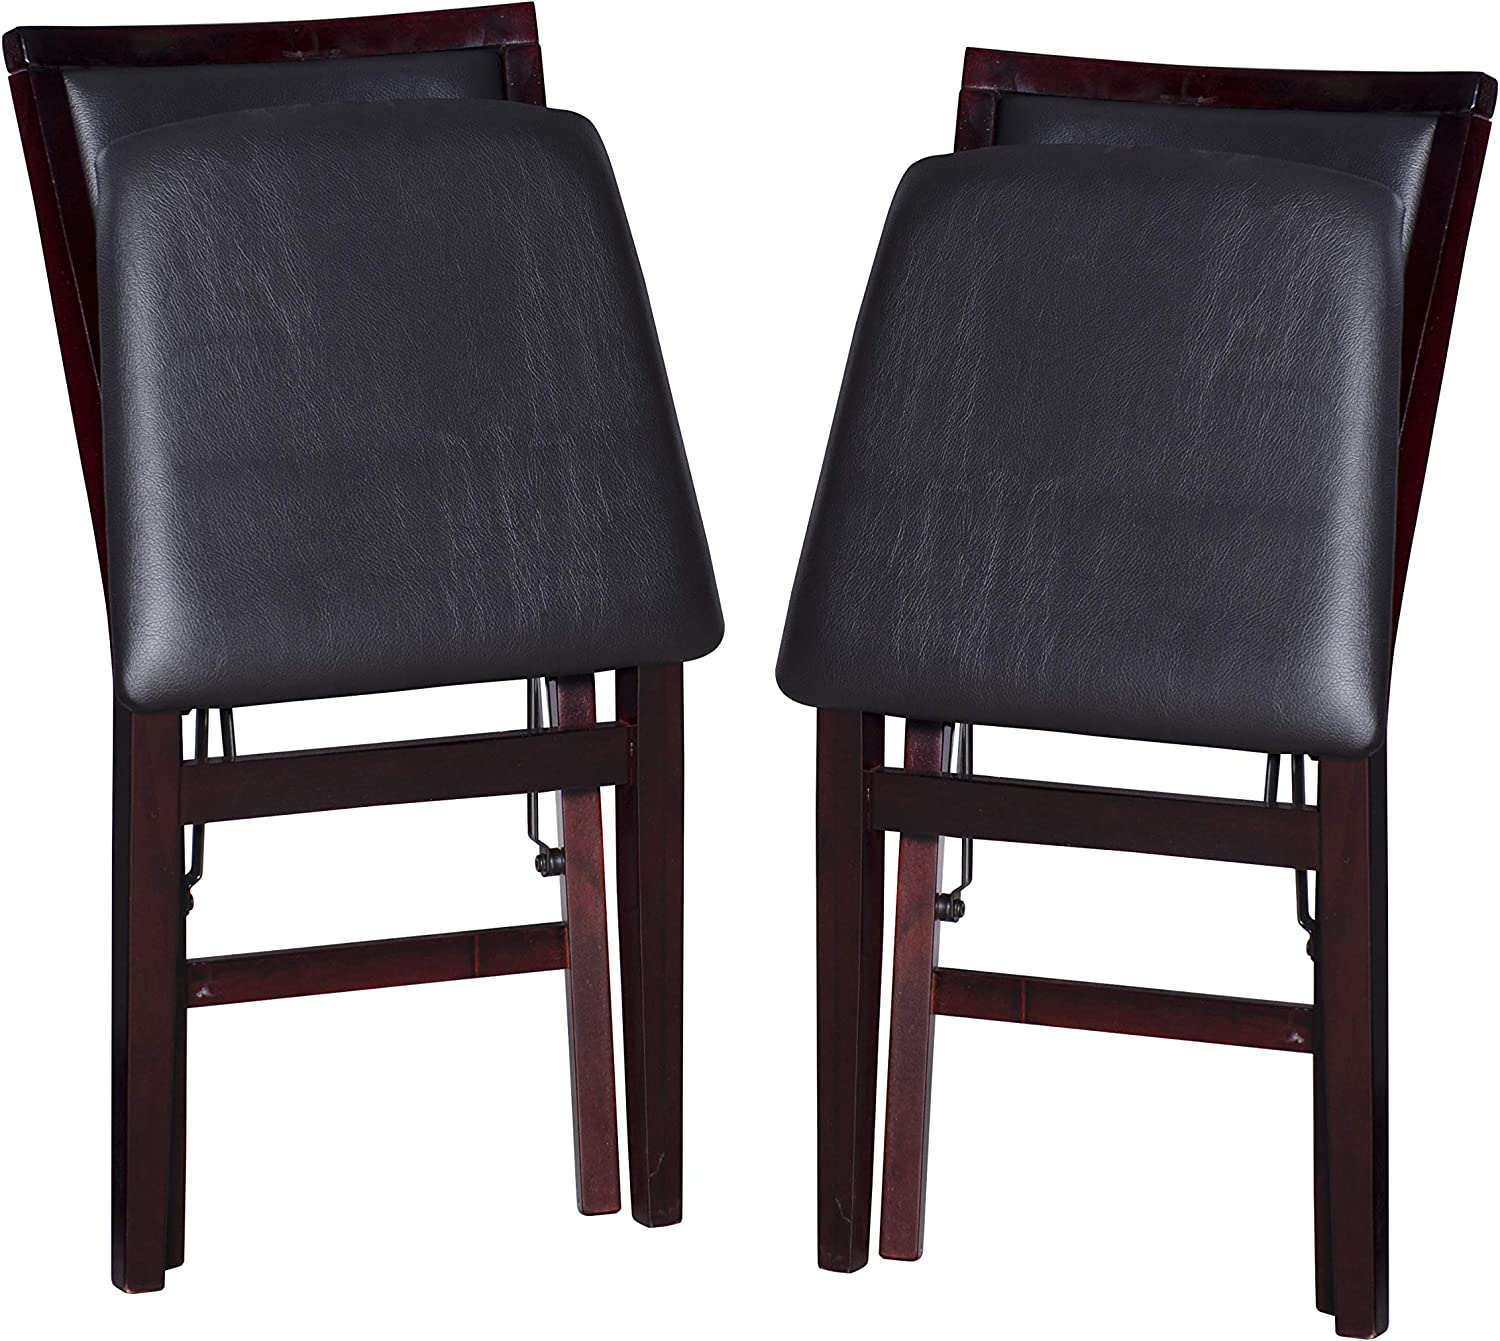 Linon Keira Pad Folding Chair 2 X Pack of 2